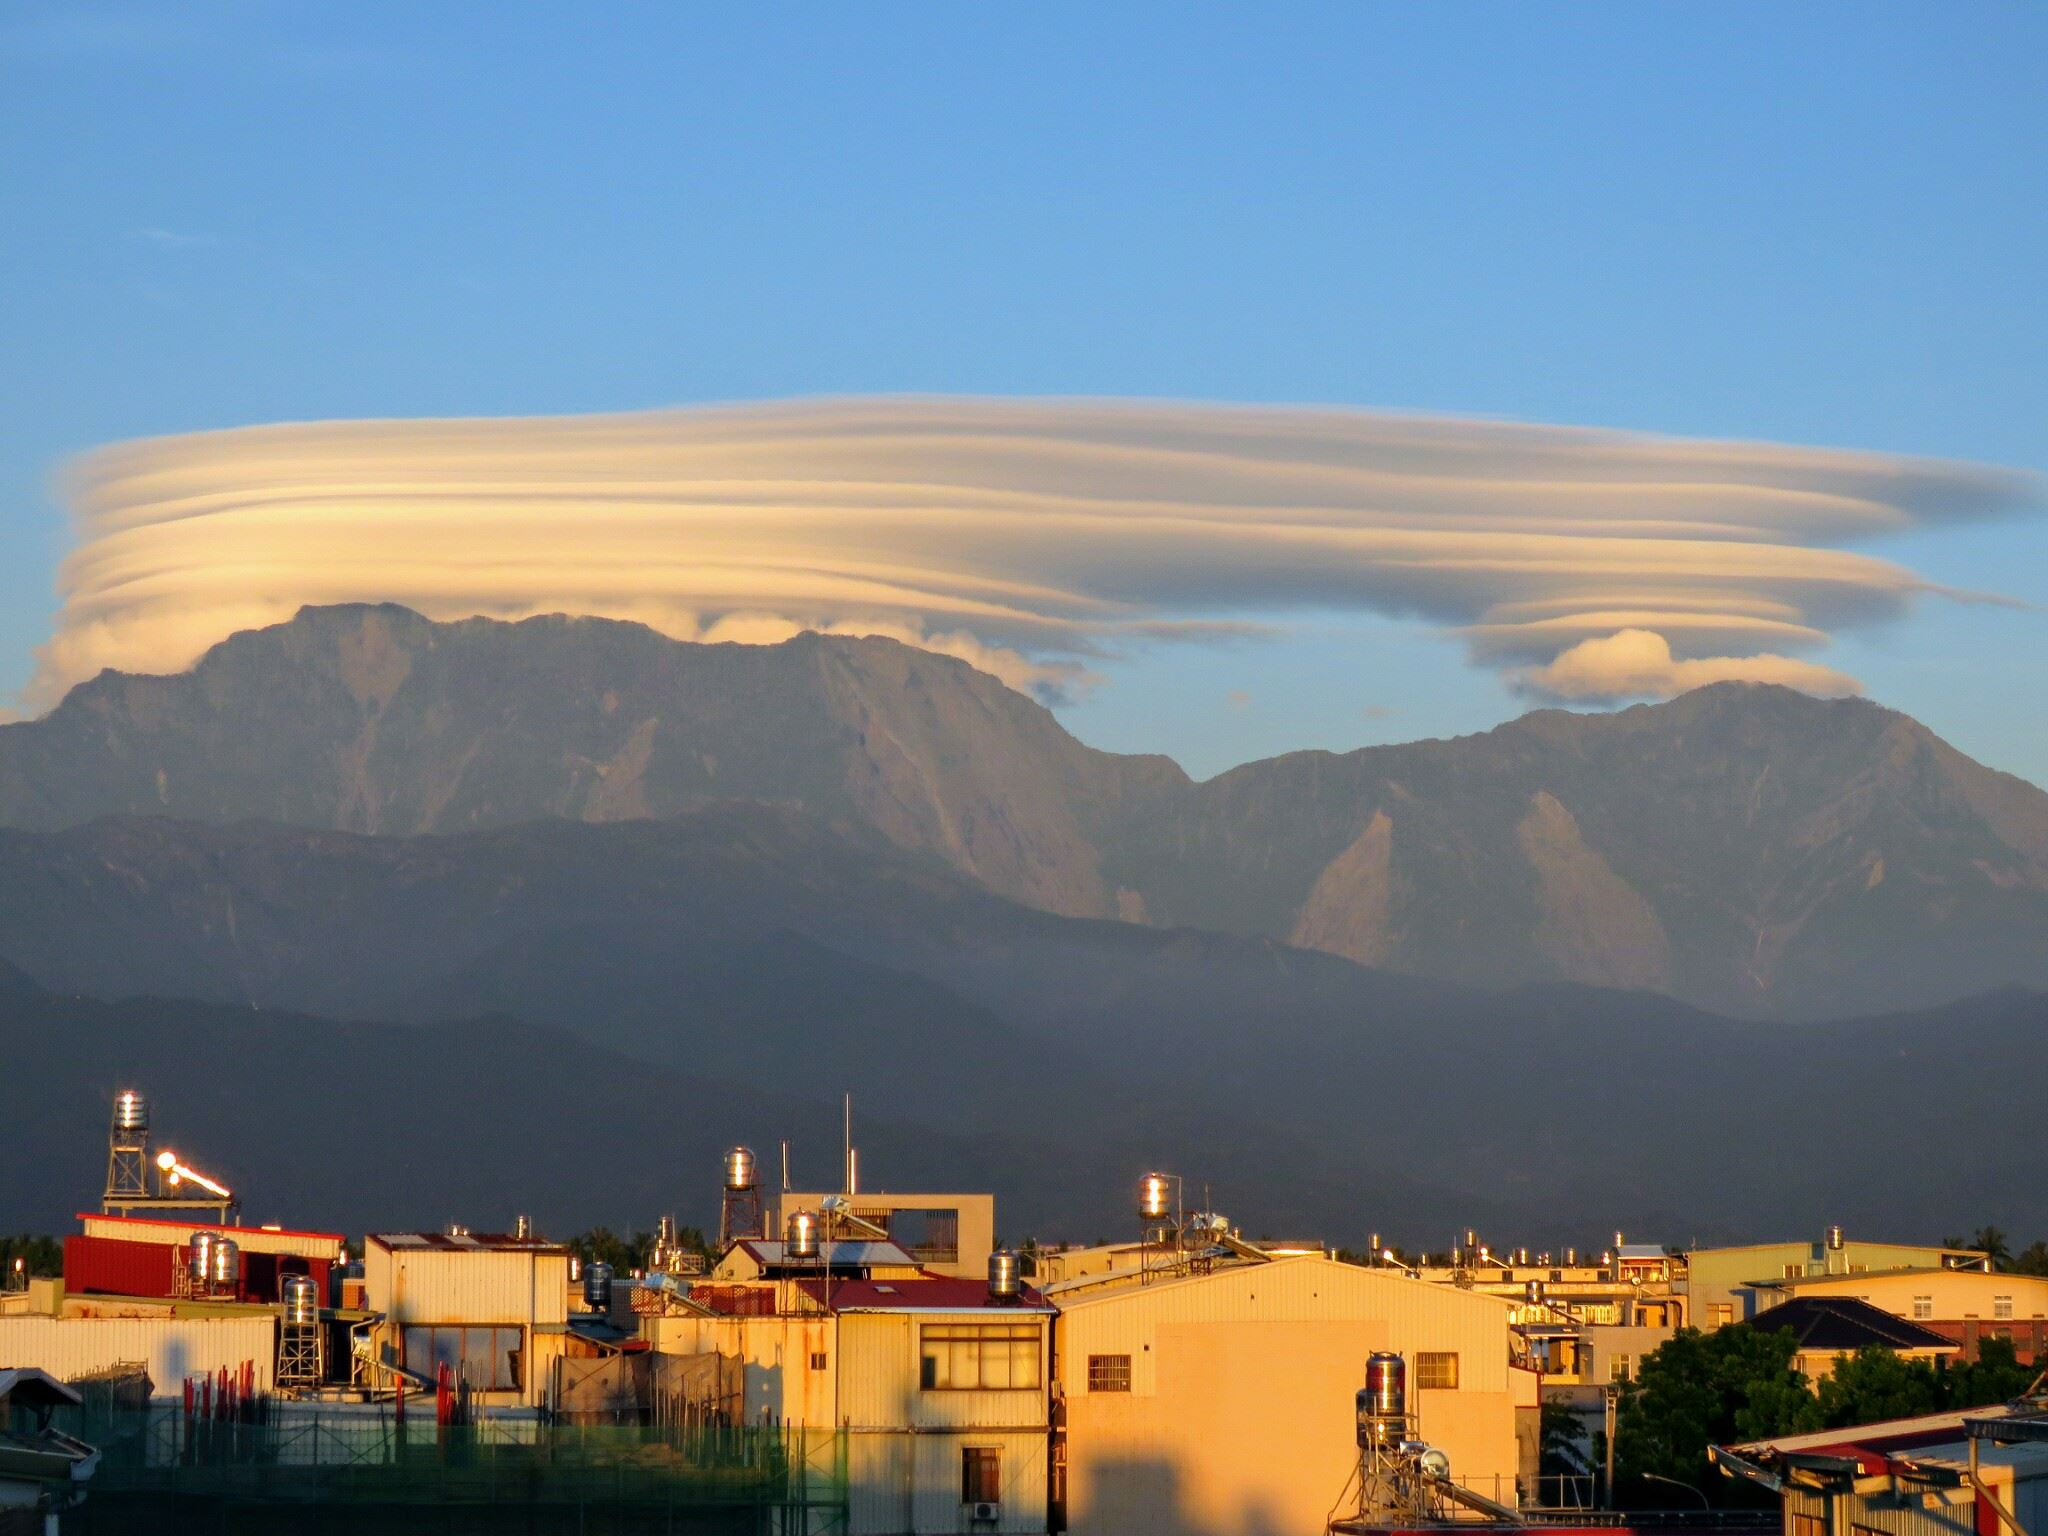 An incredible cloud formation in Pingtung County (Image from 看見屏東 Facebook Page)